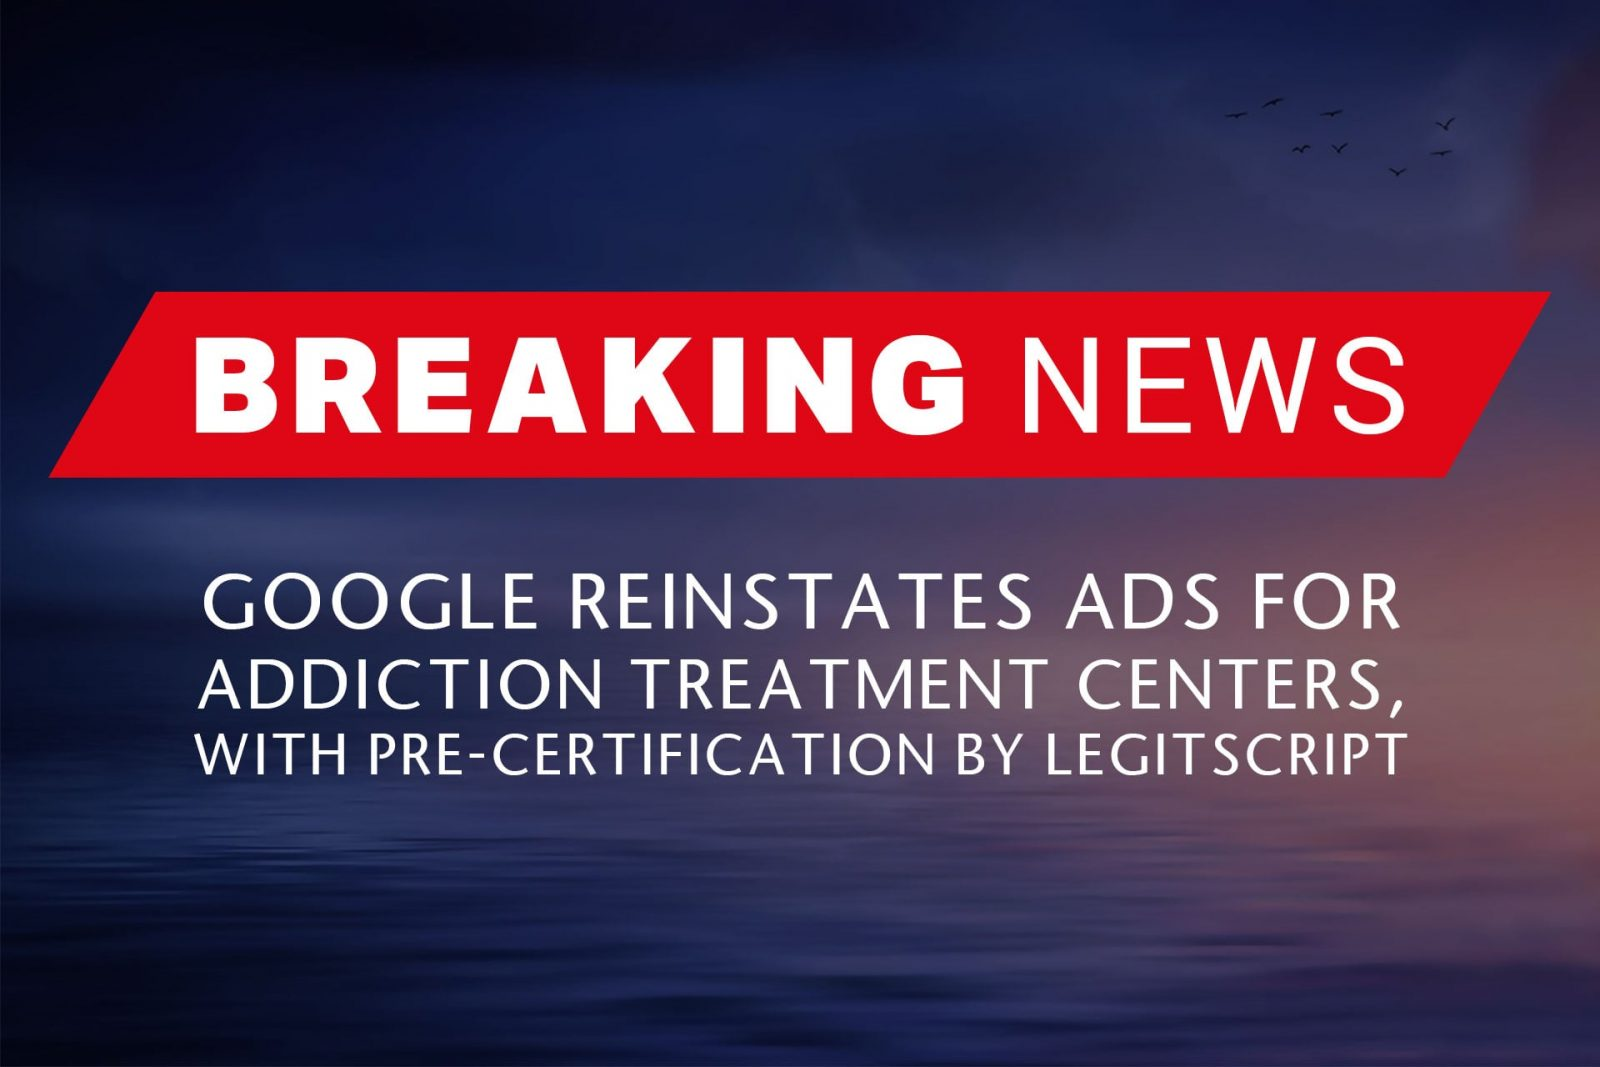 BREAKING NEWS – Google Reinstates Ads for Addiction Treatment Centers, With Pre-certification by LegitScript